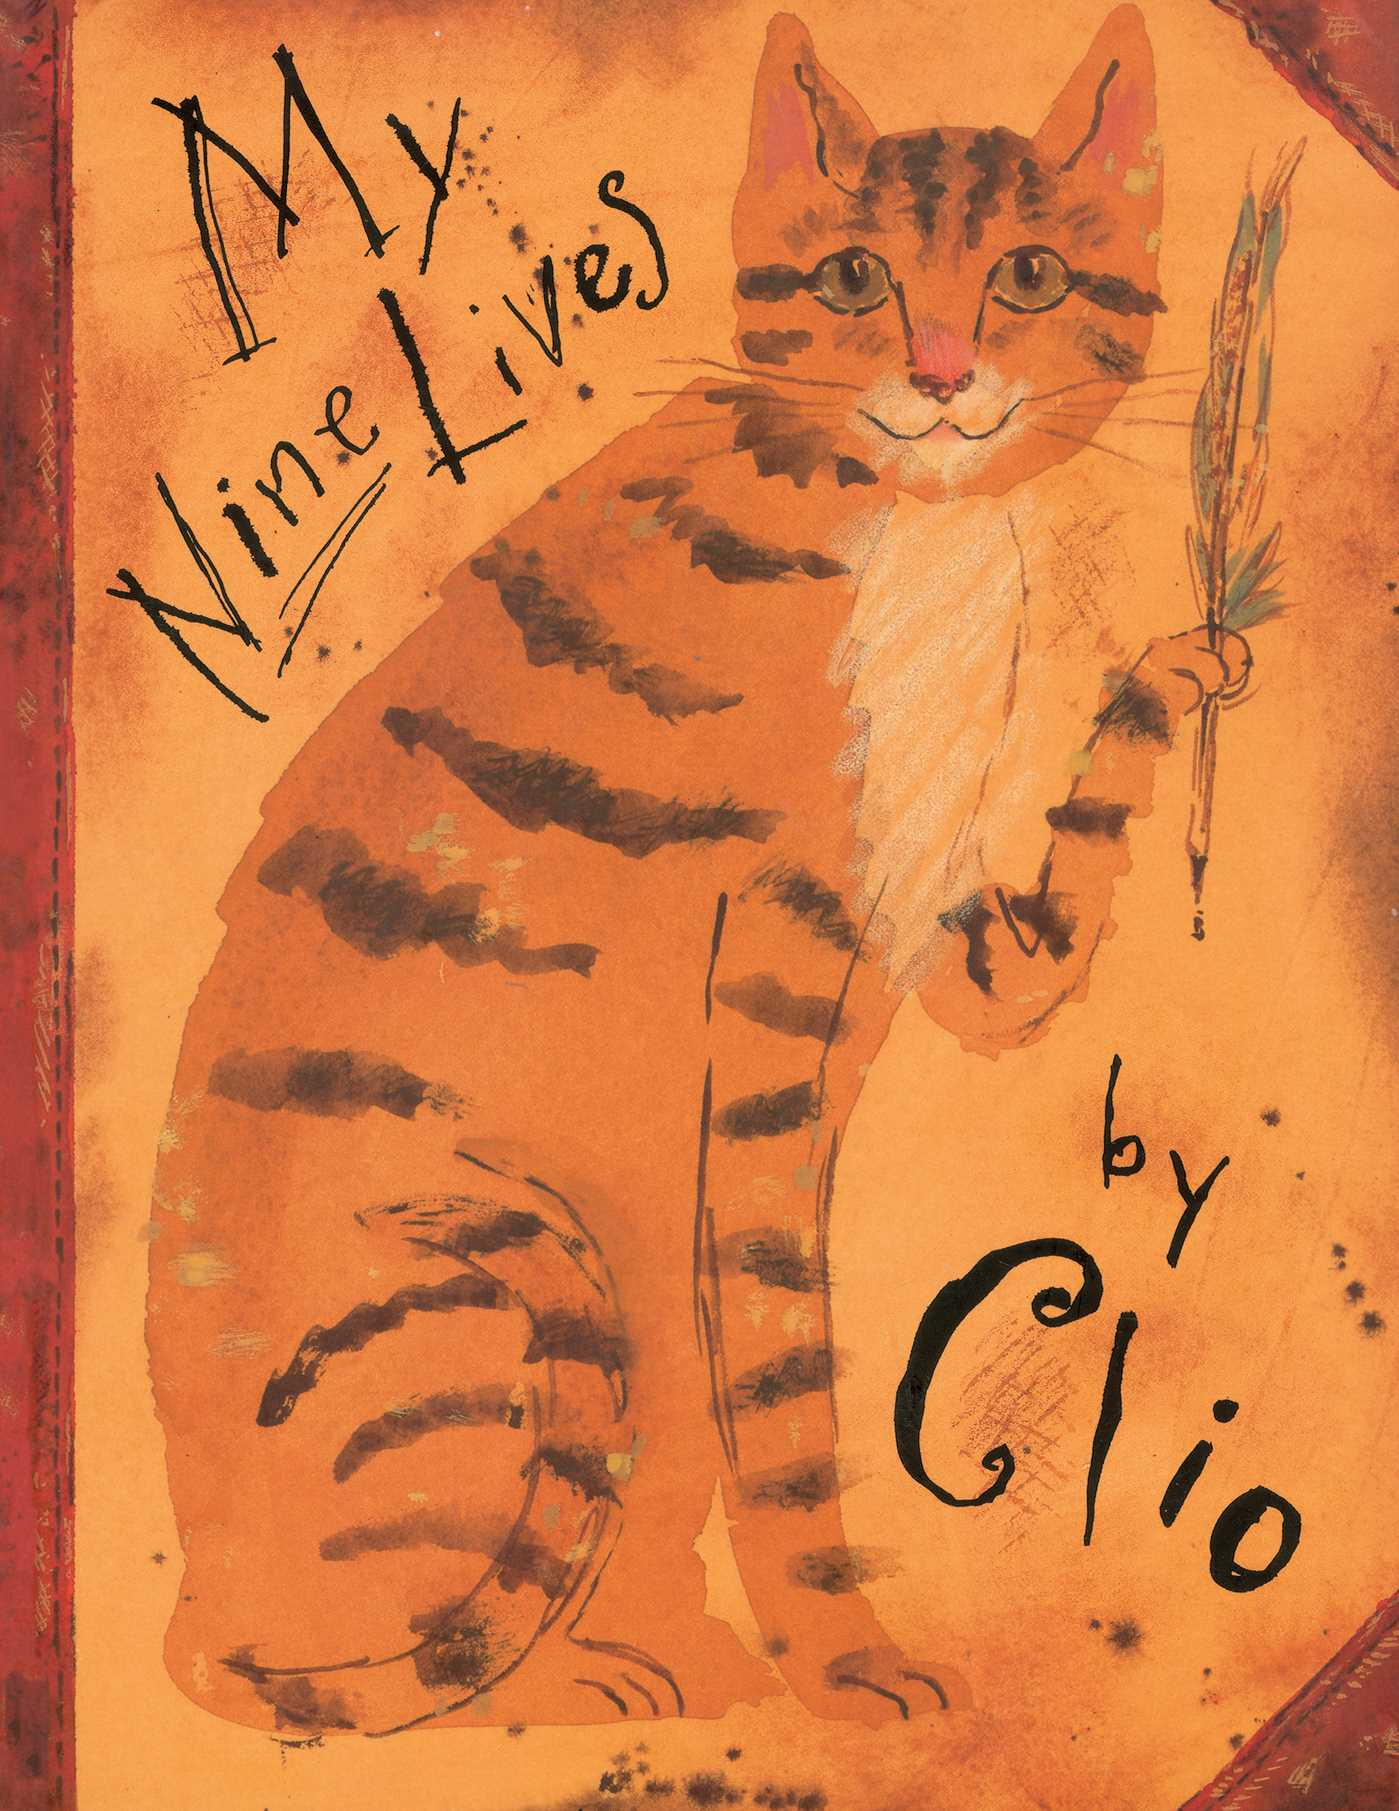 My nine lives by clio 9781481439084 hr